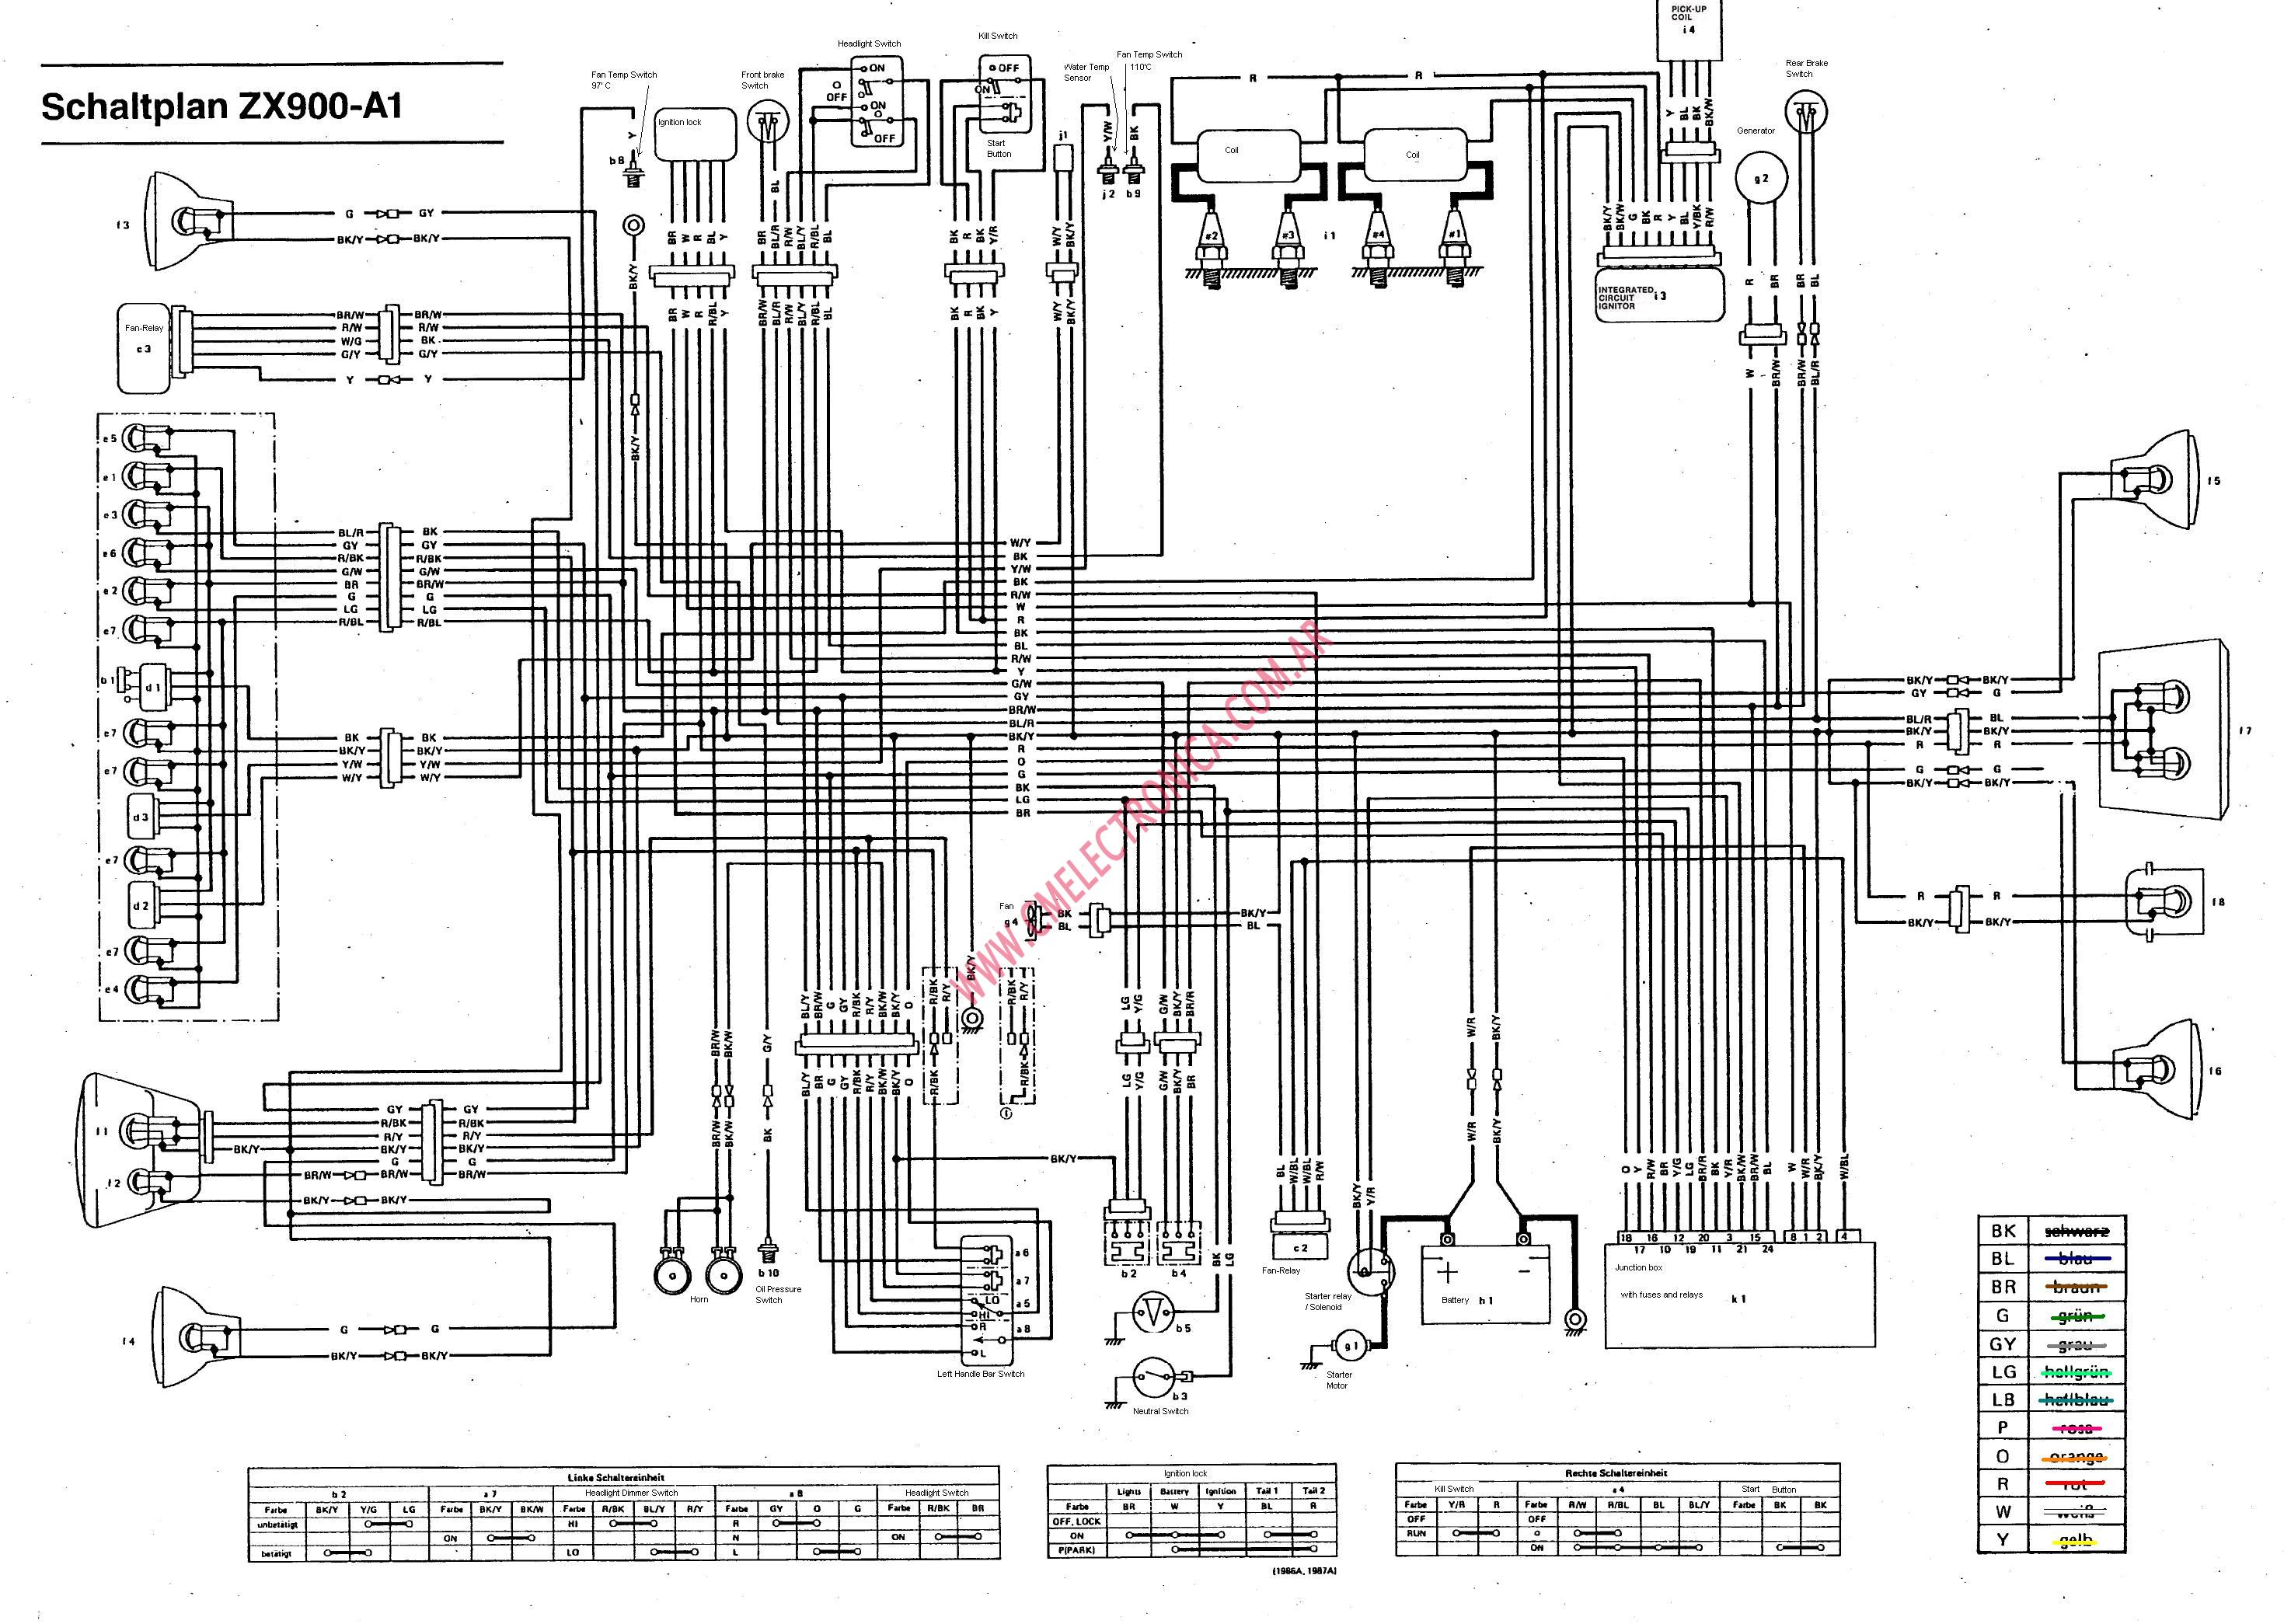 2002 Kawasaki Zx9r Ignition Wiring Diagram Electrical 2000 Vulcan Vn1500 Enthusiast Rh Rasalibre Co Zx10r 2003 Motogp